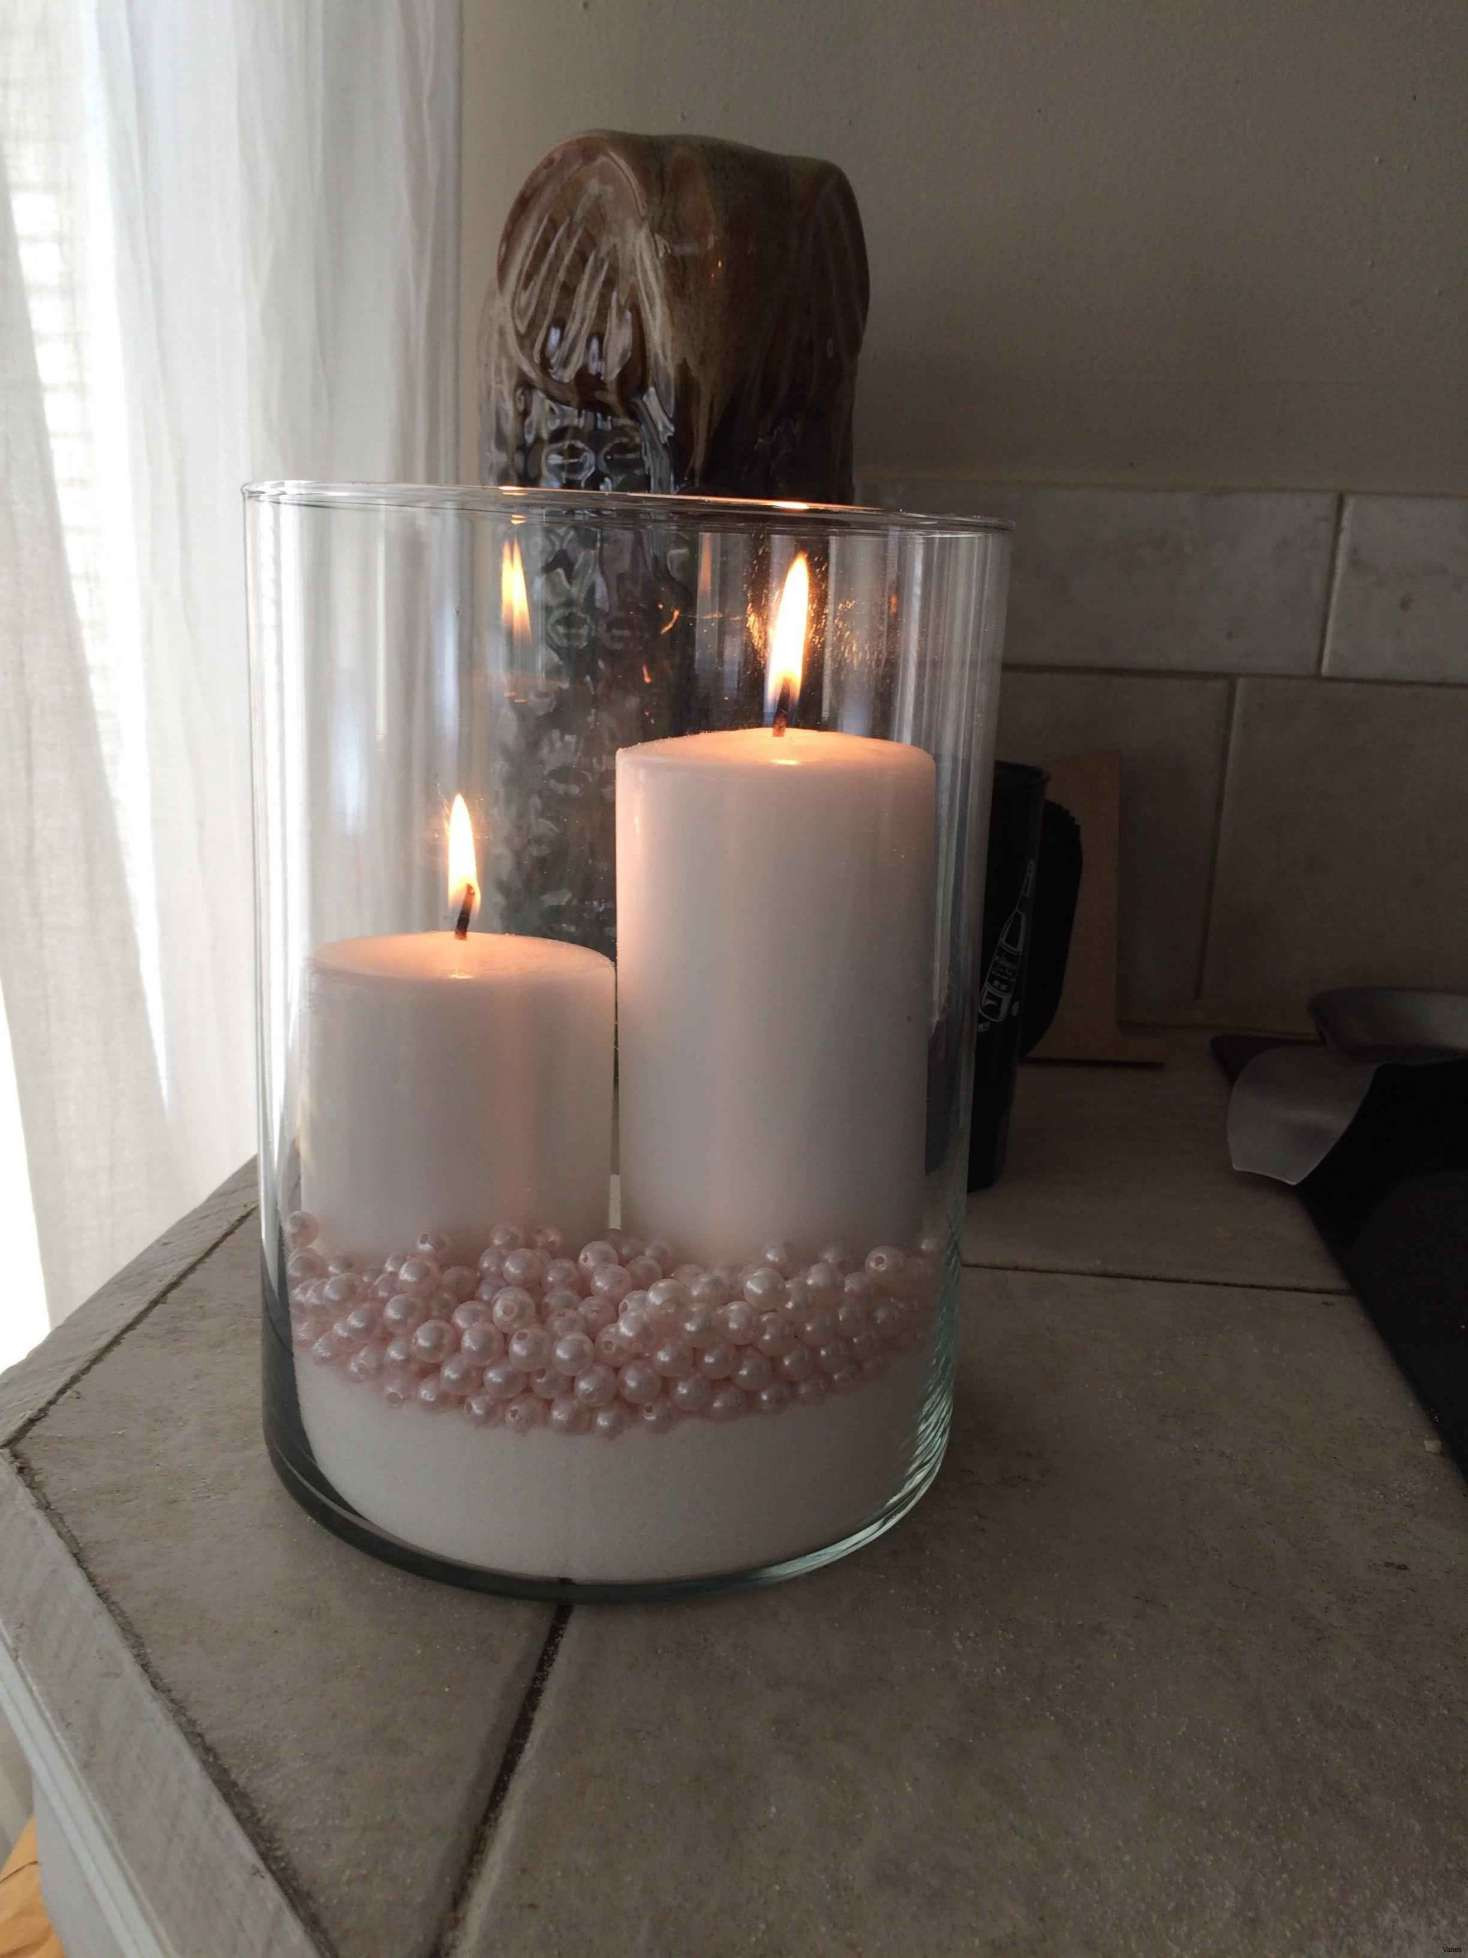 cheap glass vases bulk wholesale uk of candle stands wholesale nice tall candle holders new with candle intended for candle stands wholesale nice tall candle holders new with candle holder wholesale candle holder